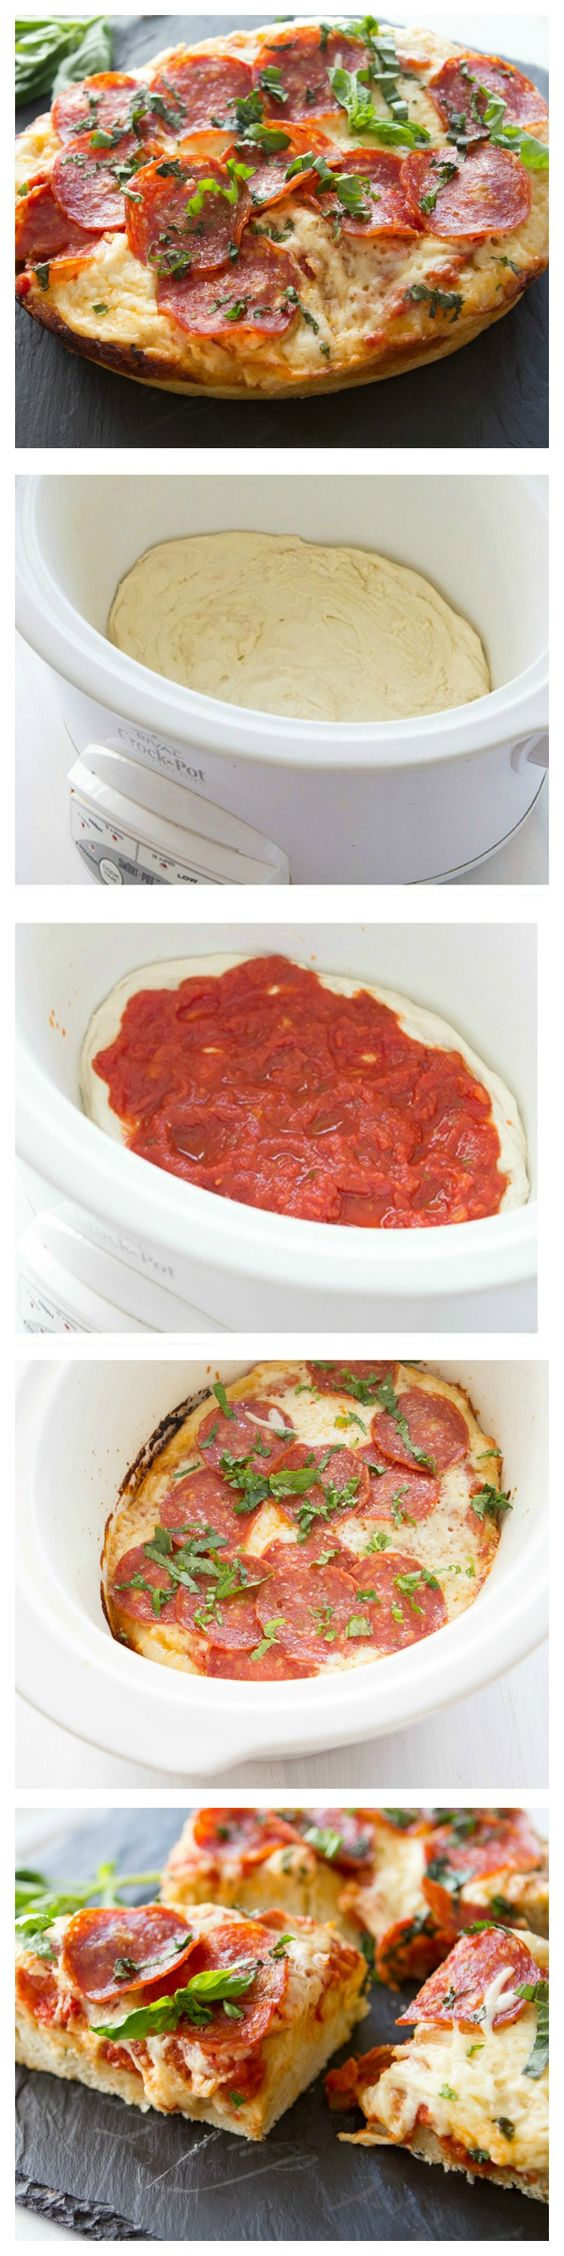 Try This Delicious Crock-Pot Pepperoni Pizza